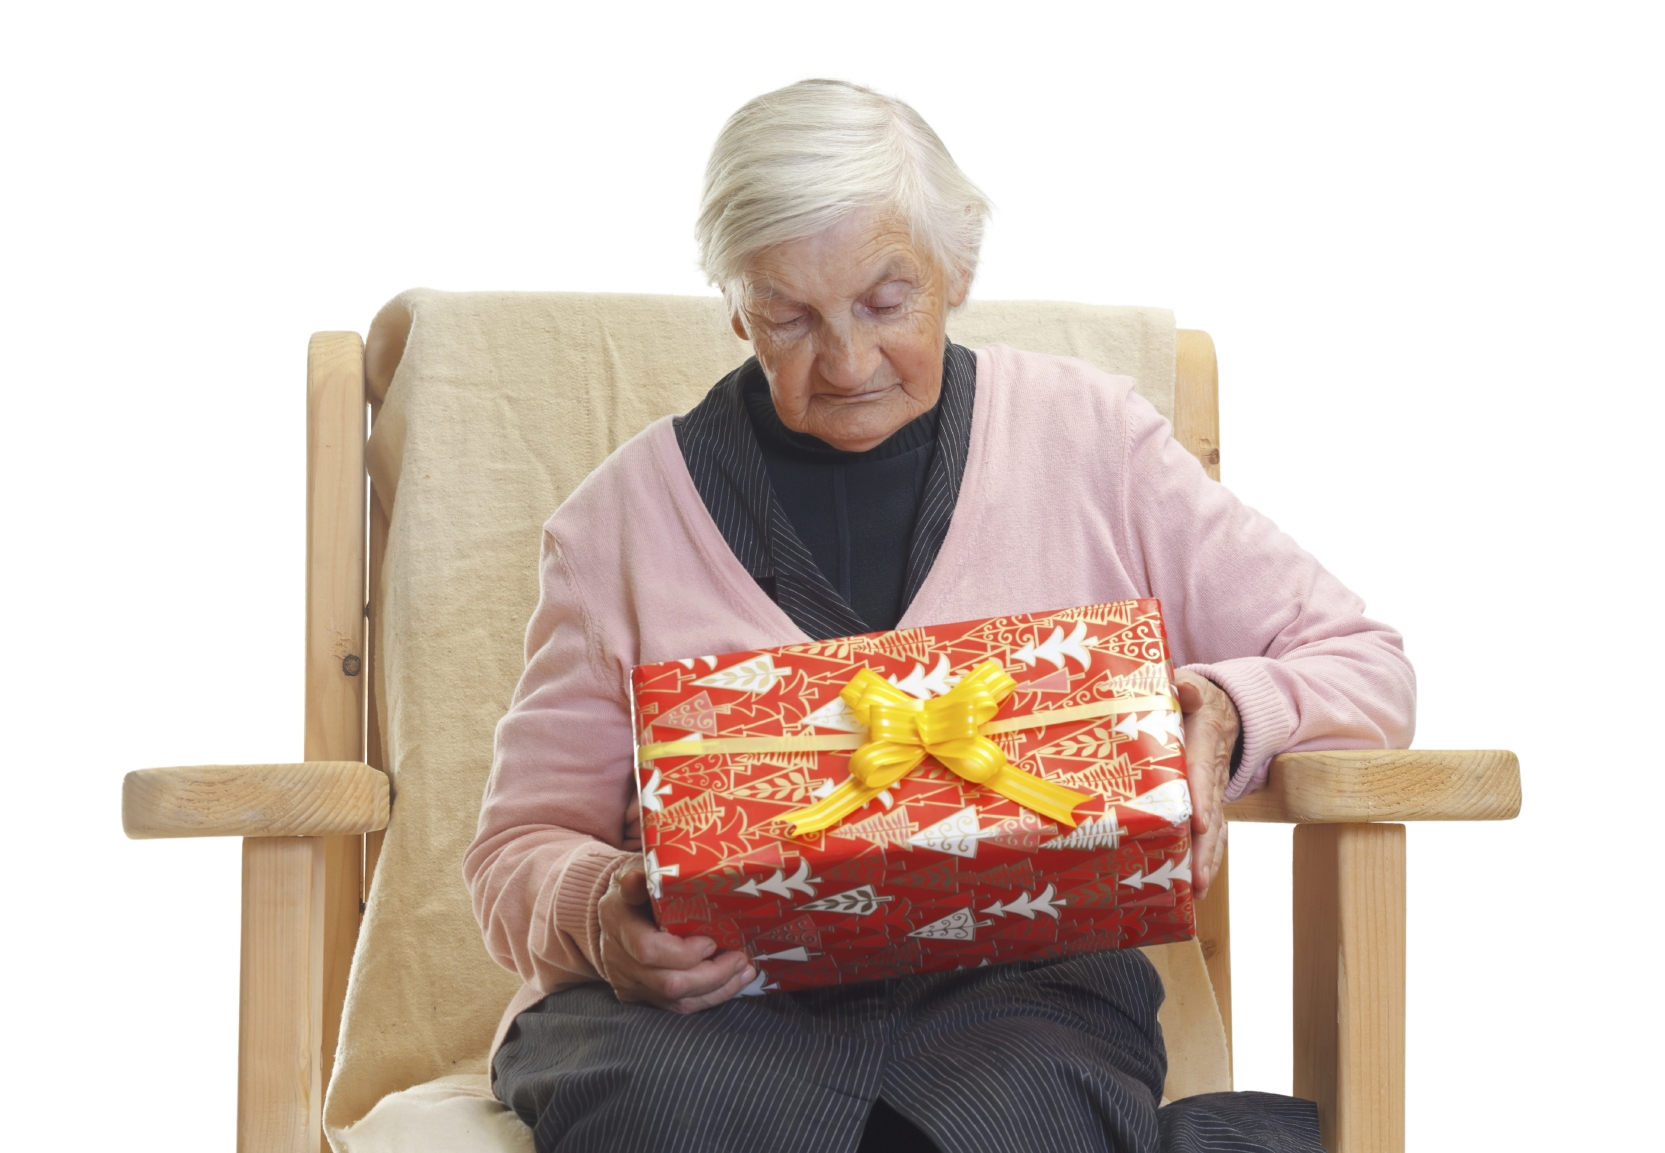 Holiday Gifts for People With Alzheimer